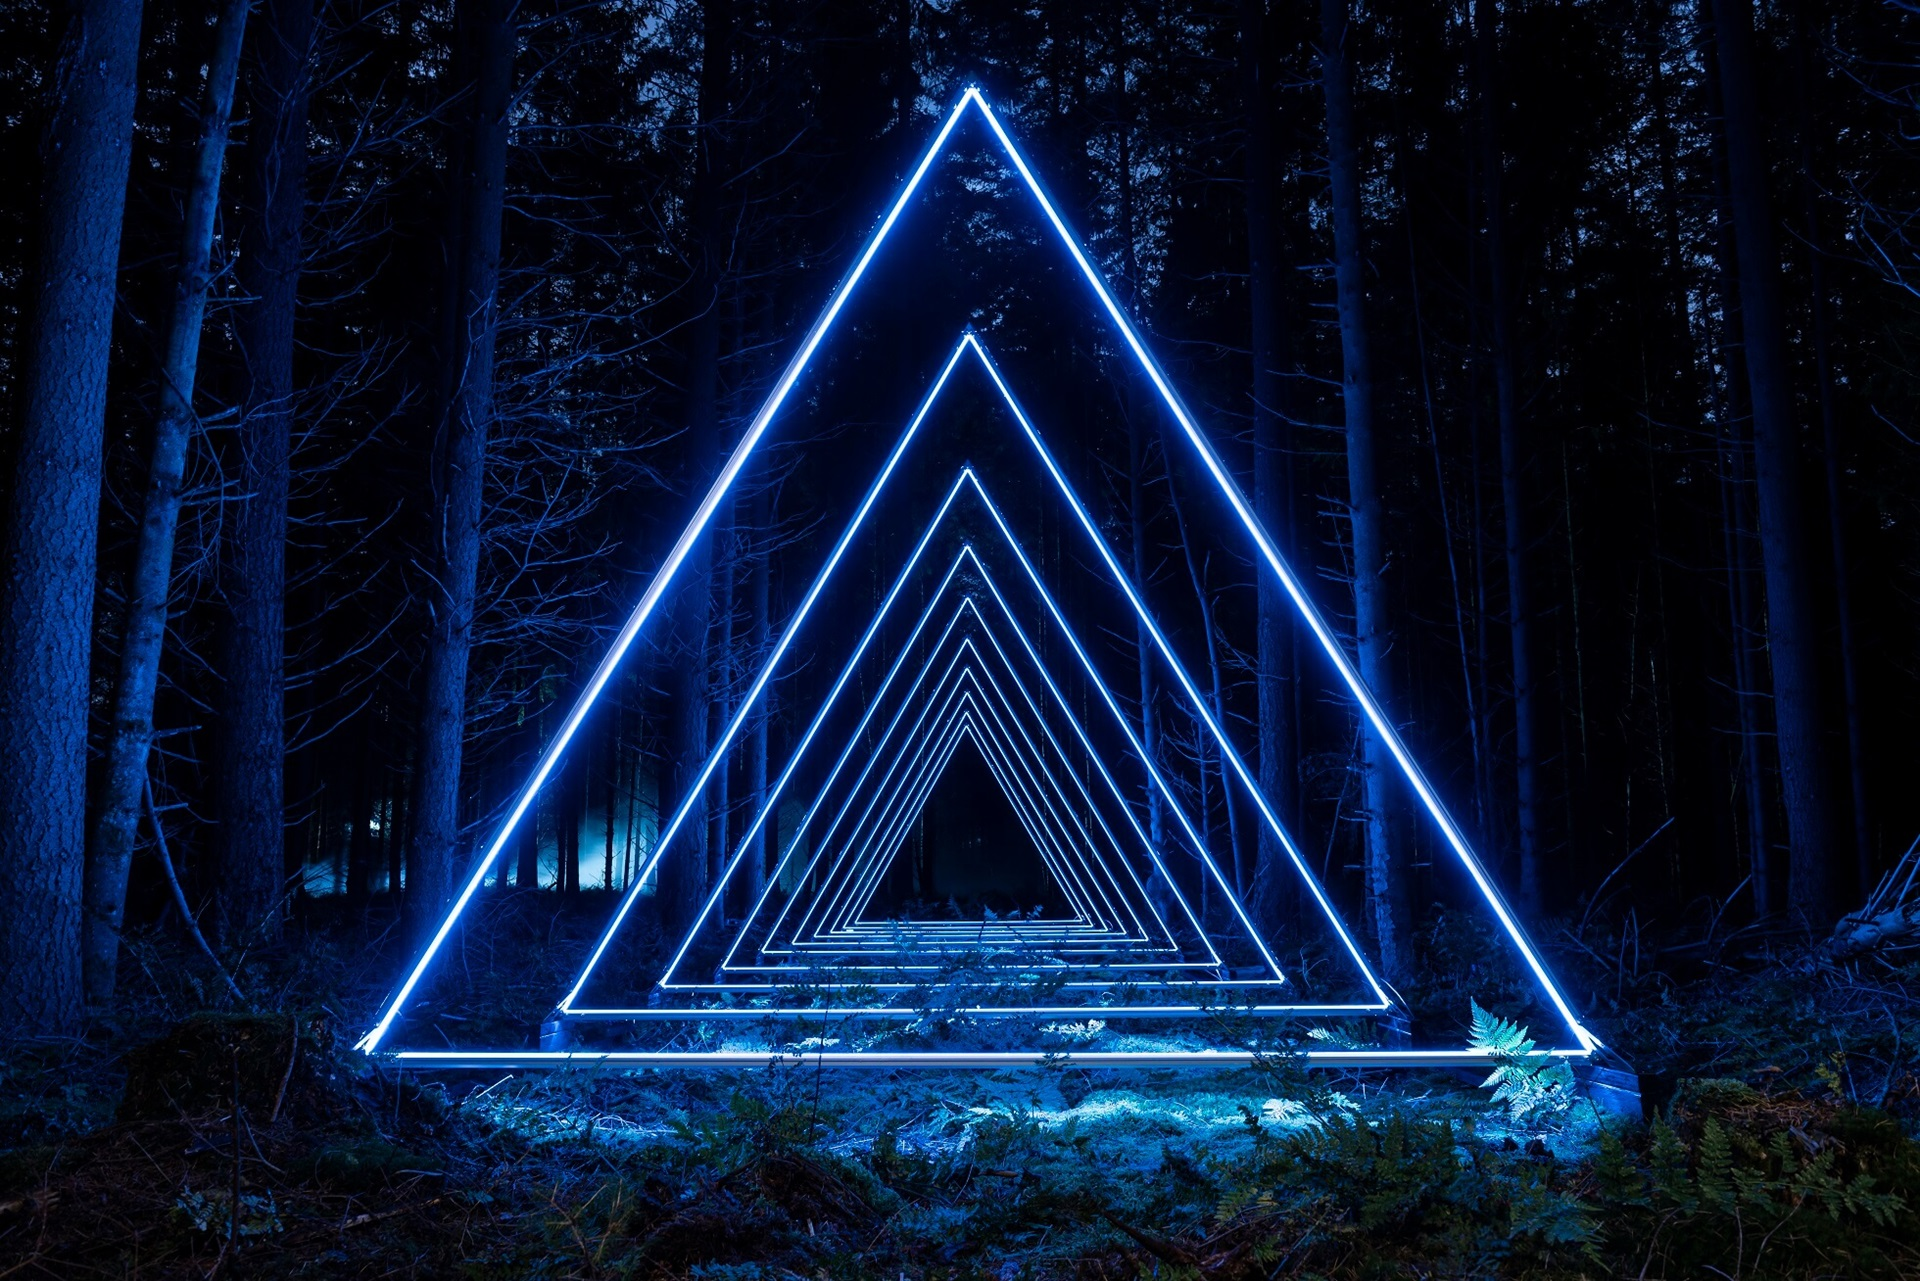 Blue, triangular and brightly lit lights in a dark forest